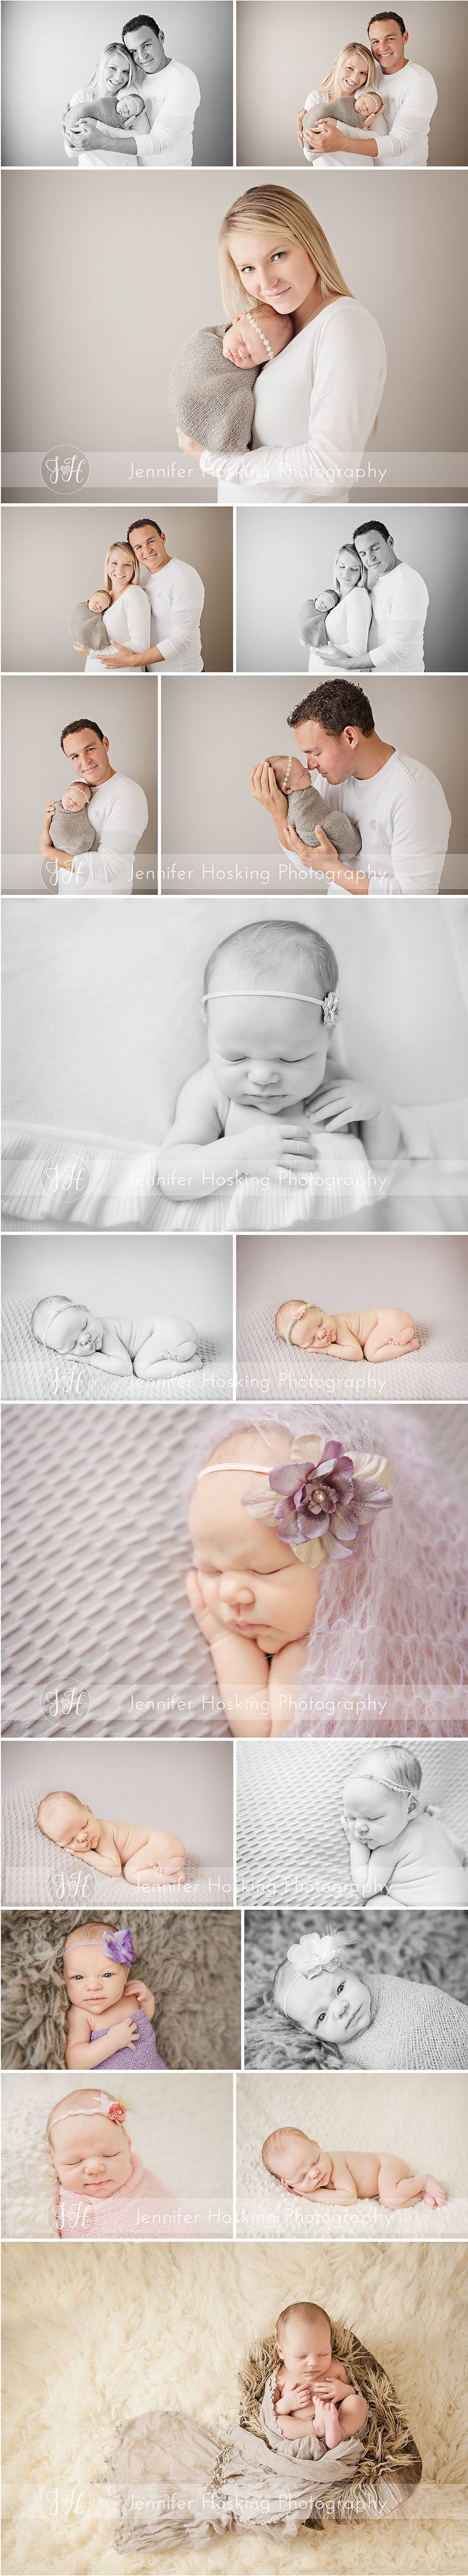 Newborn Photographer Metro Detroit